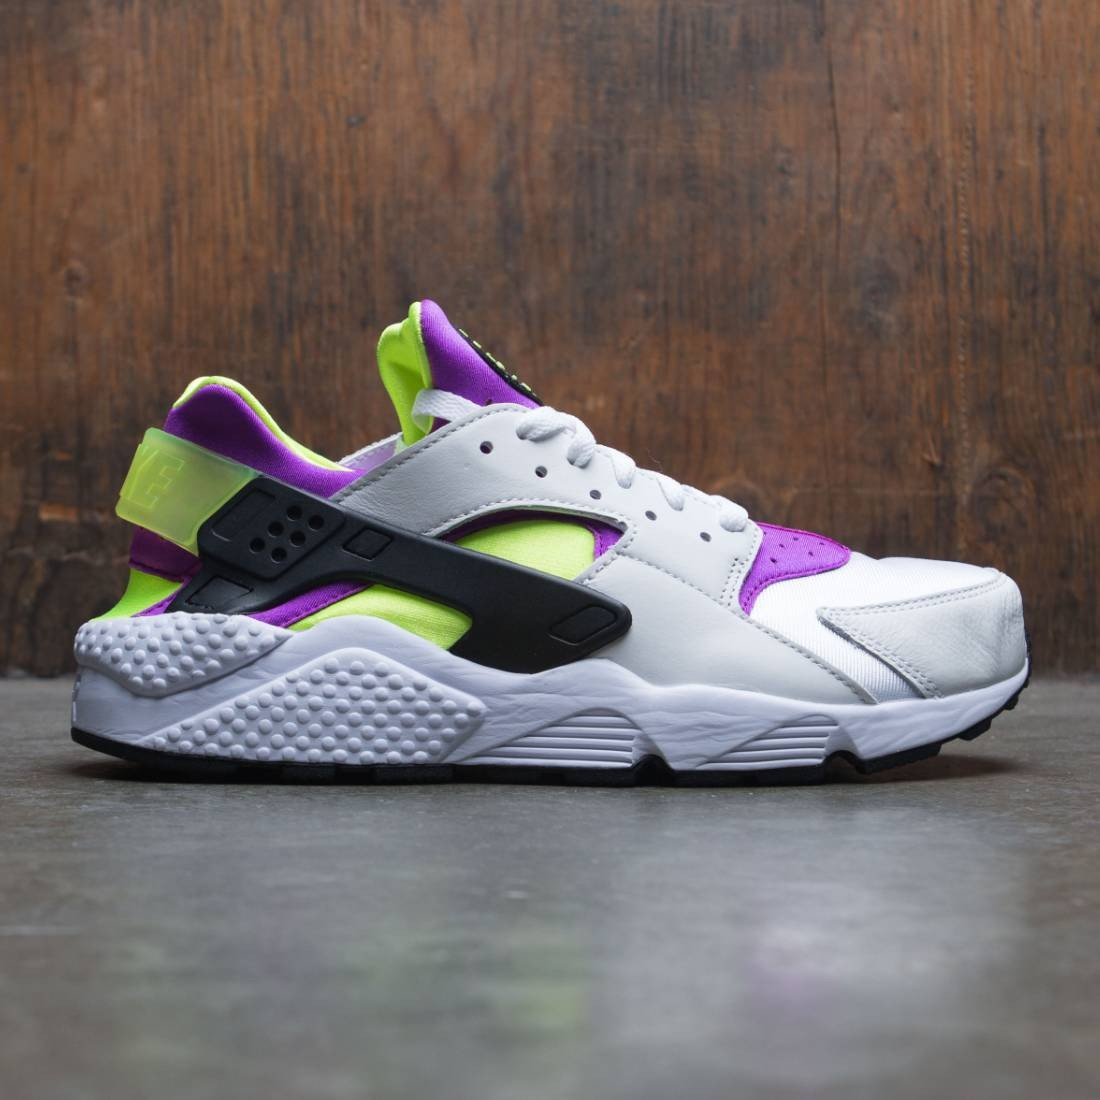 new arrival 8de5c be393 Nike Men Air Huarache Run 91 Qs (white / black-neon yellow-magenta)